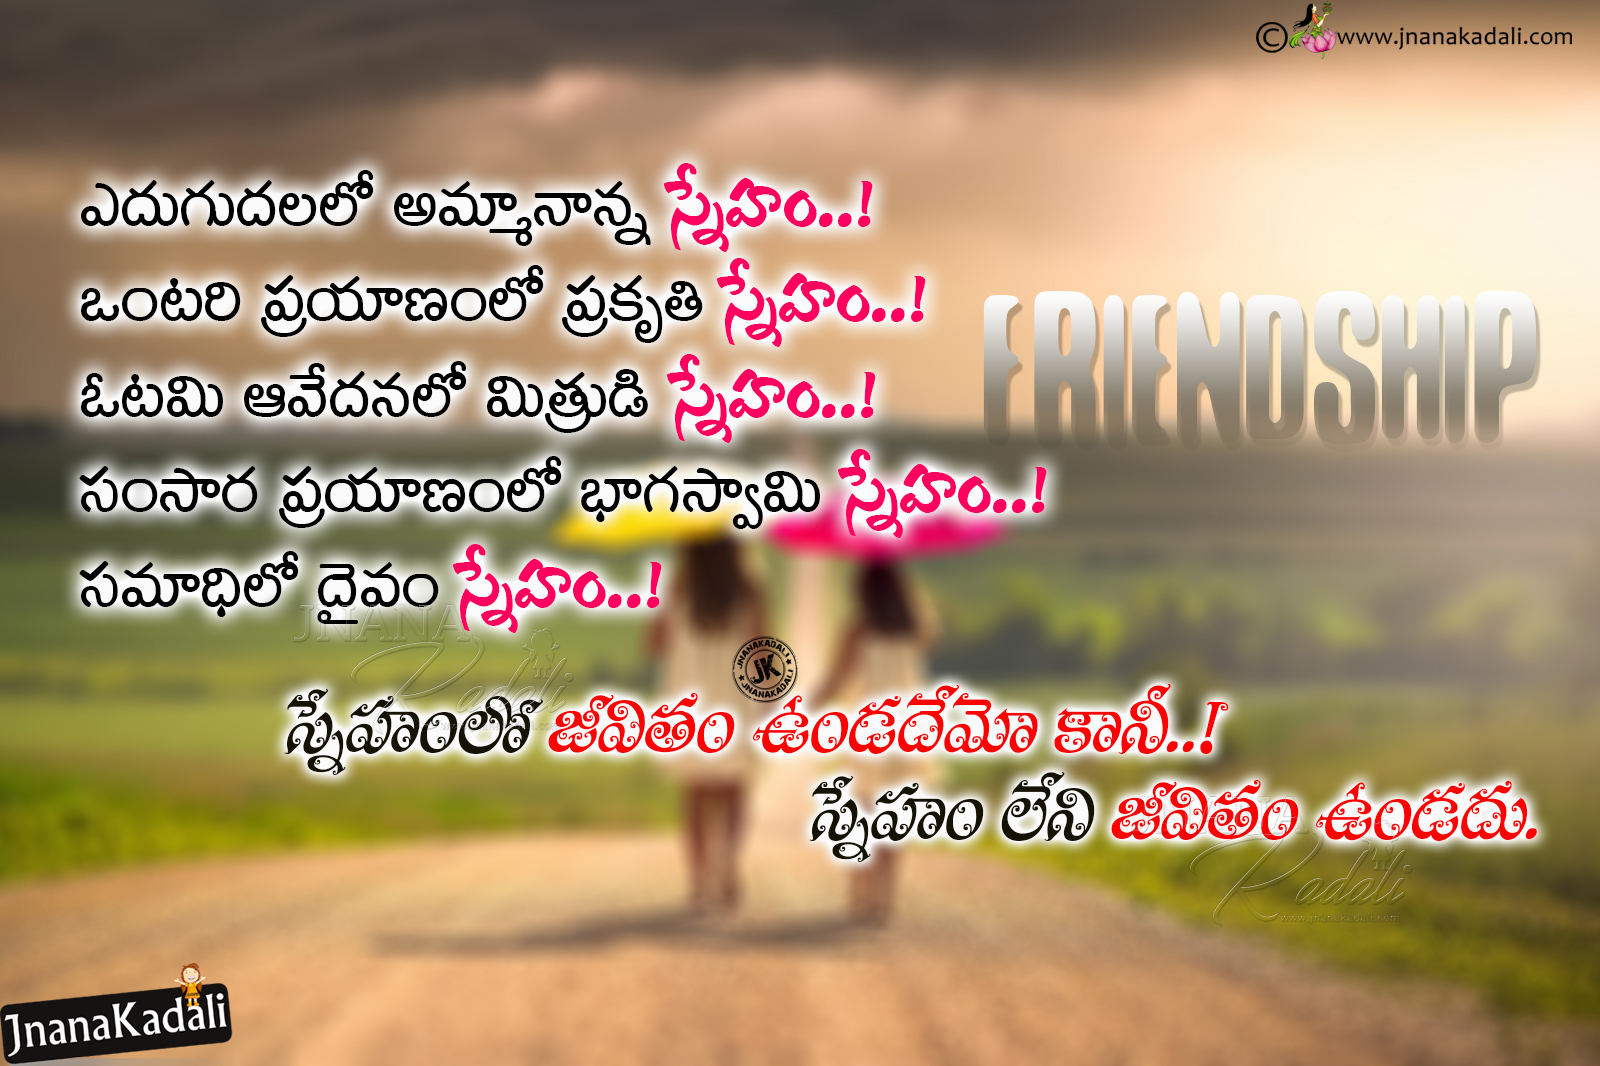 Friendship Is About Quotes Latest Best Telugu Friendship Heart Touching Quotes With Cute